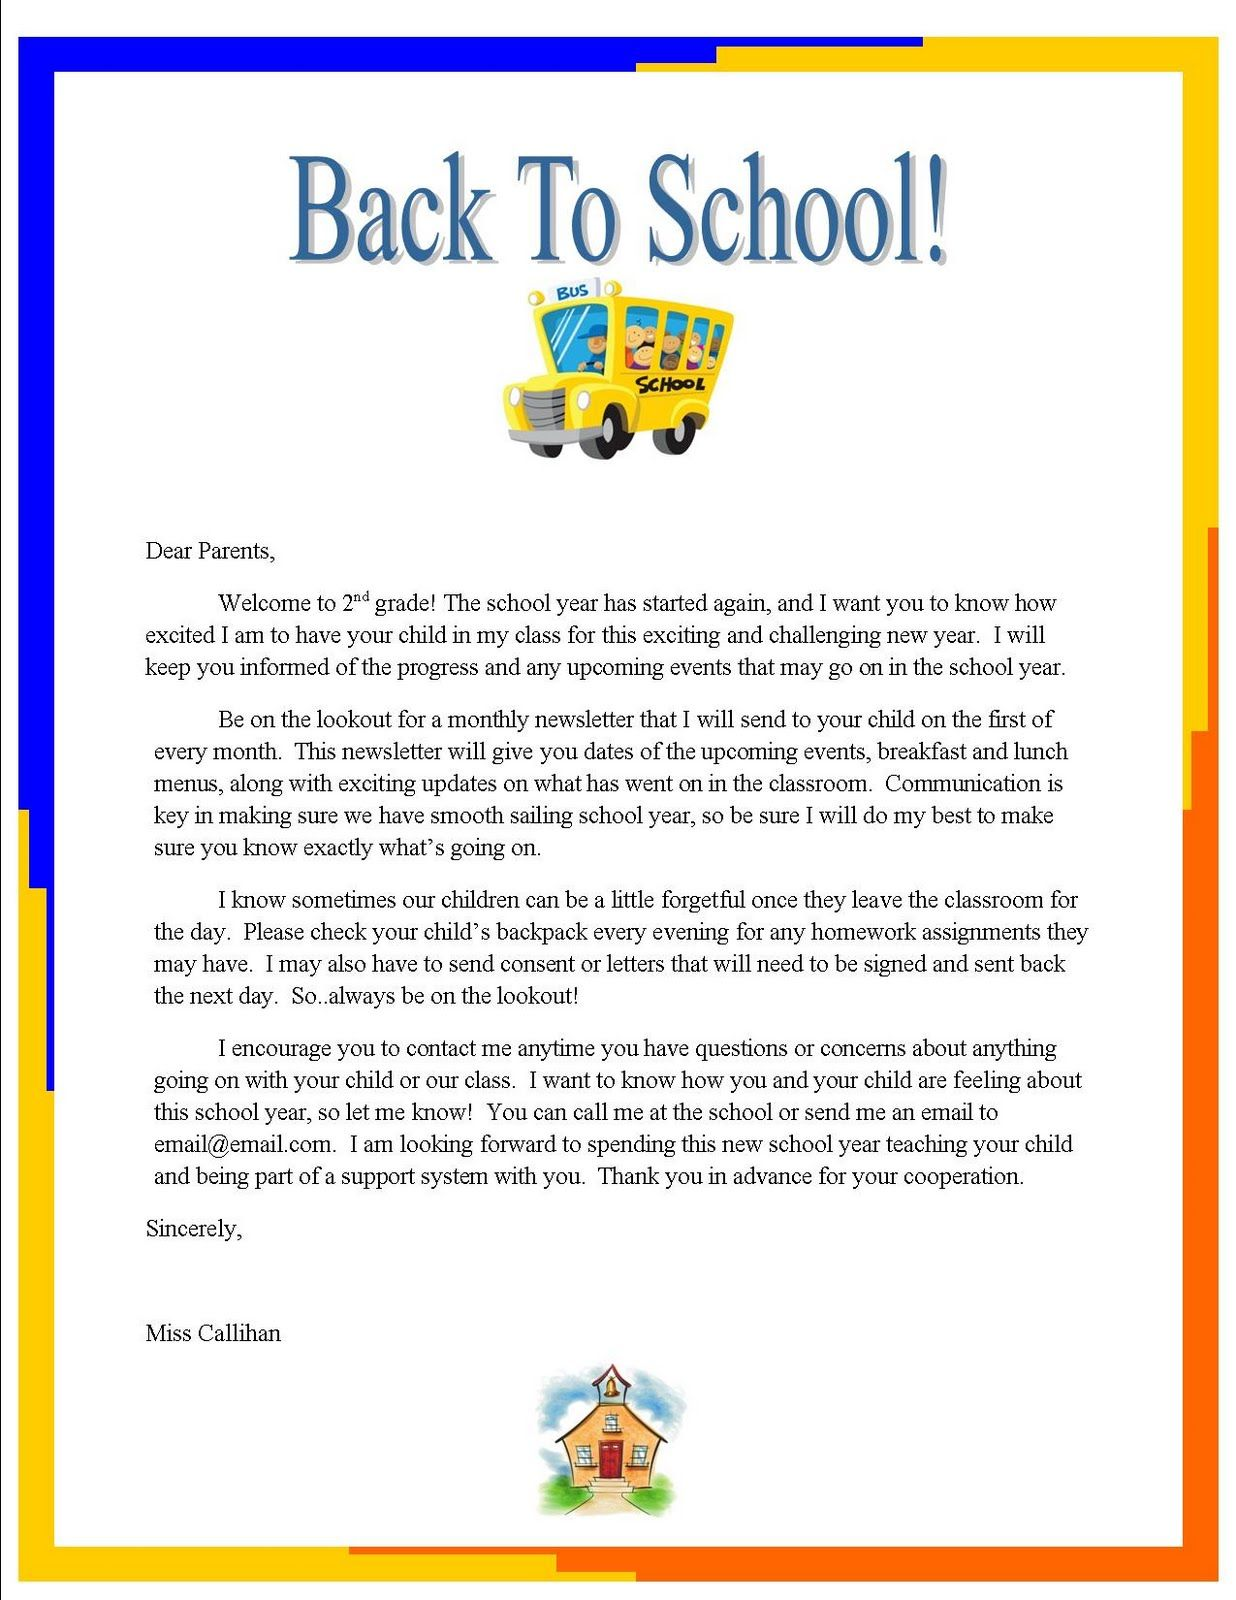 Day Of School Letter To Parents Elementary By Emily S